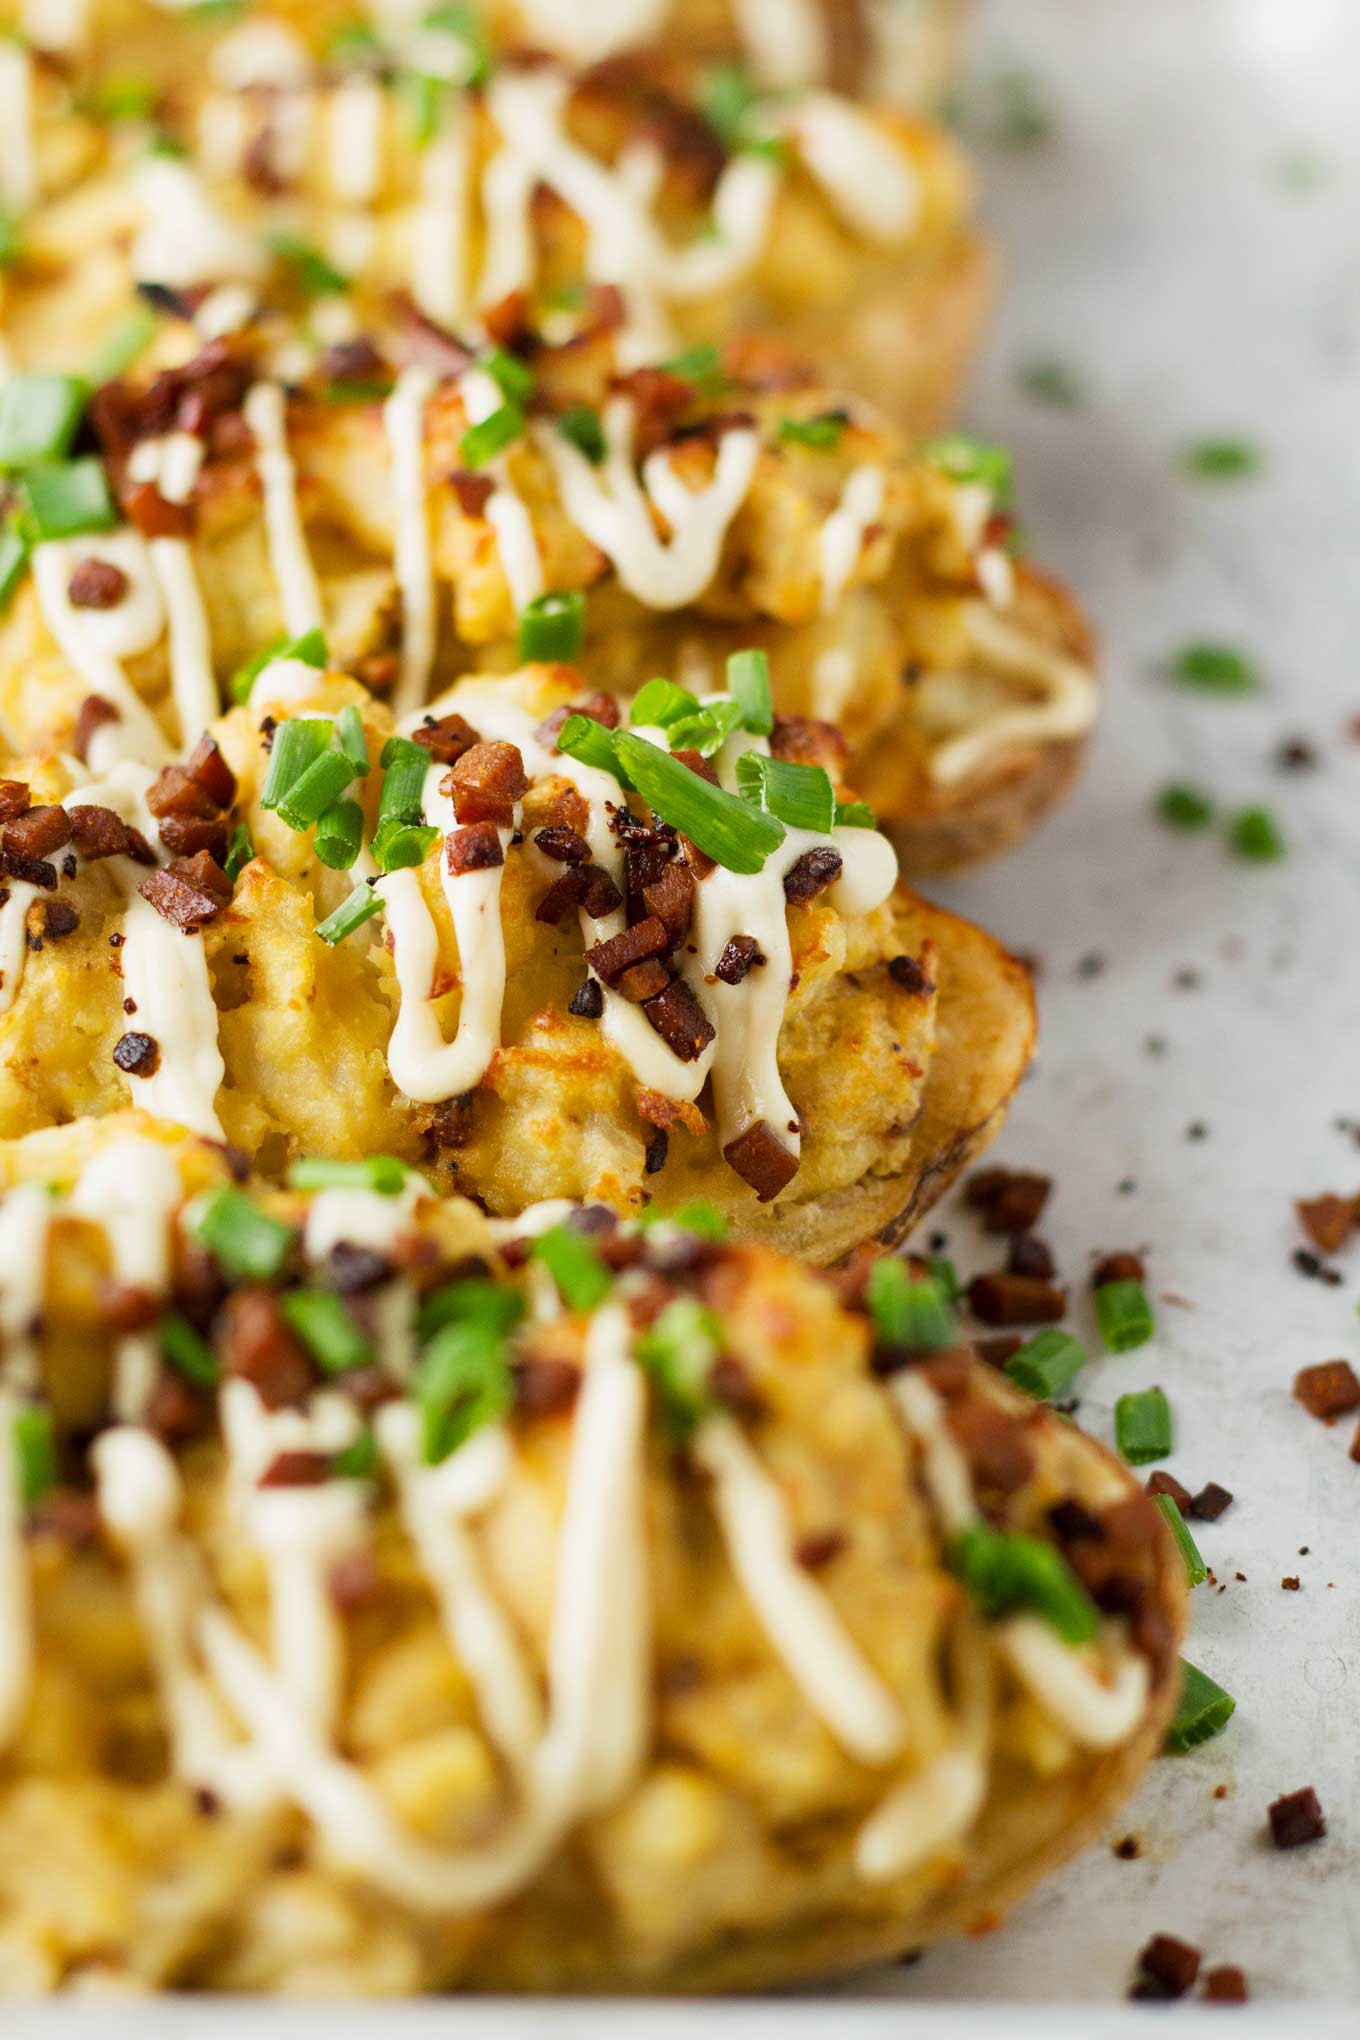 Protein In Potato  Protein Packed Twice Baked Potatoes V GF